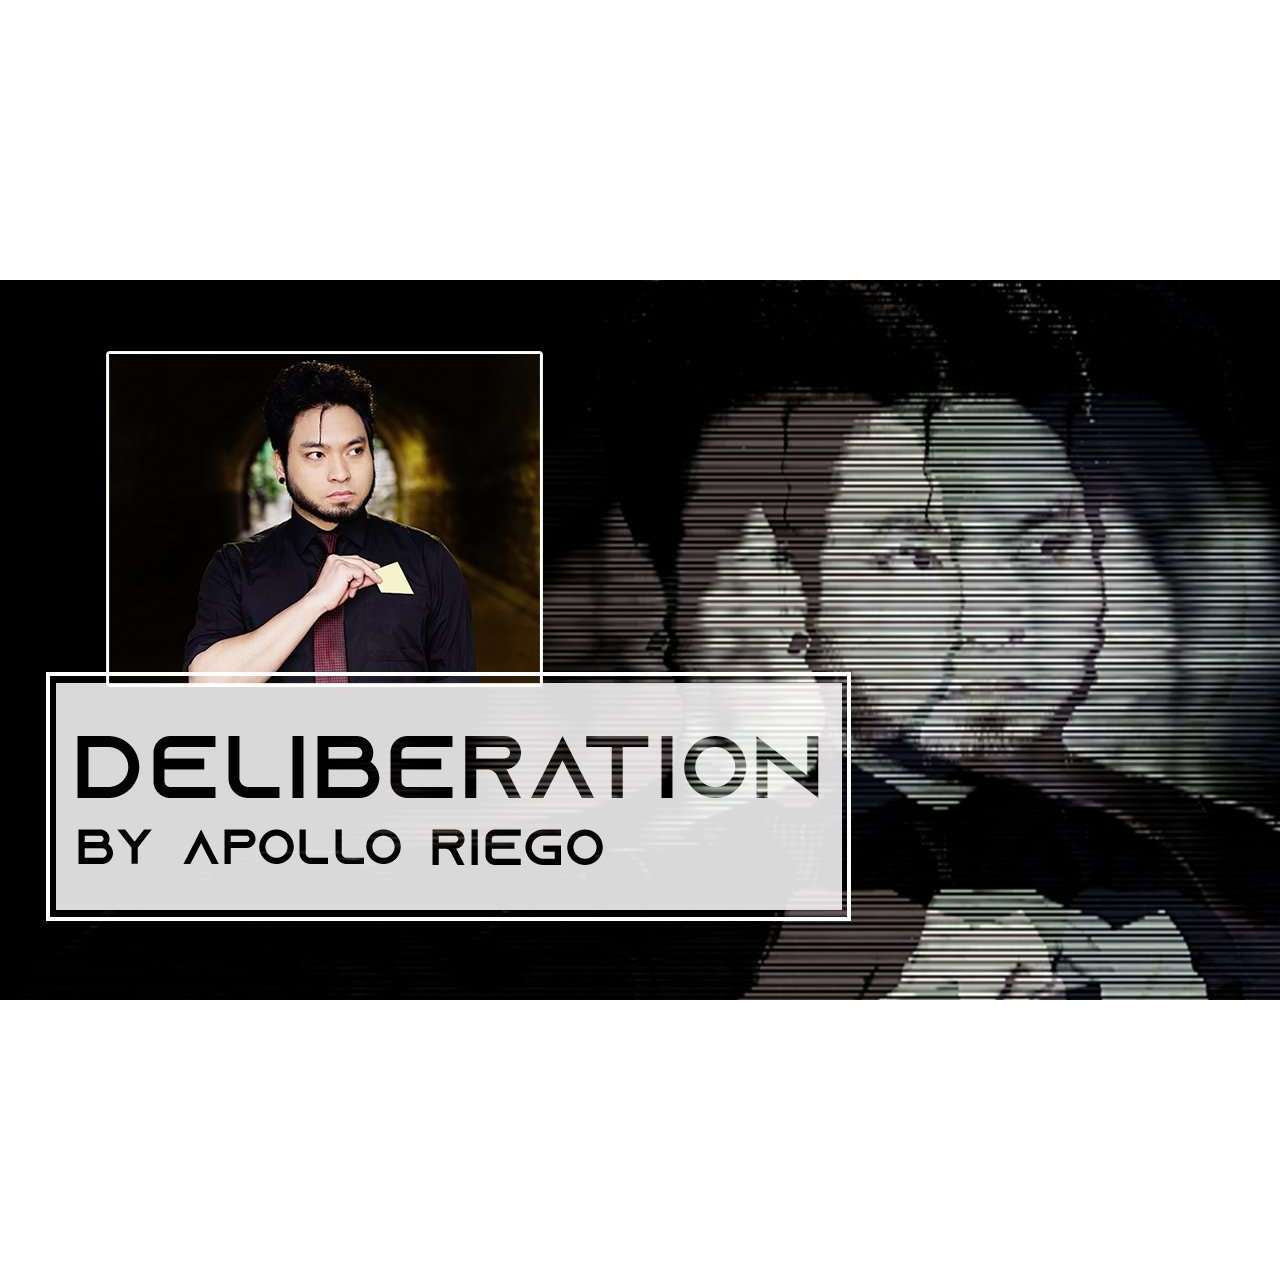 Deliberation by Apollo Riego